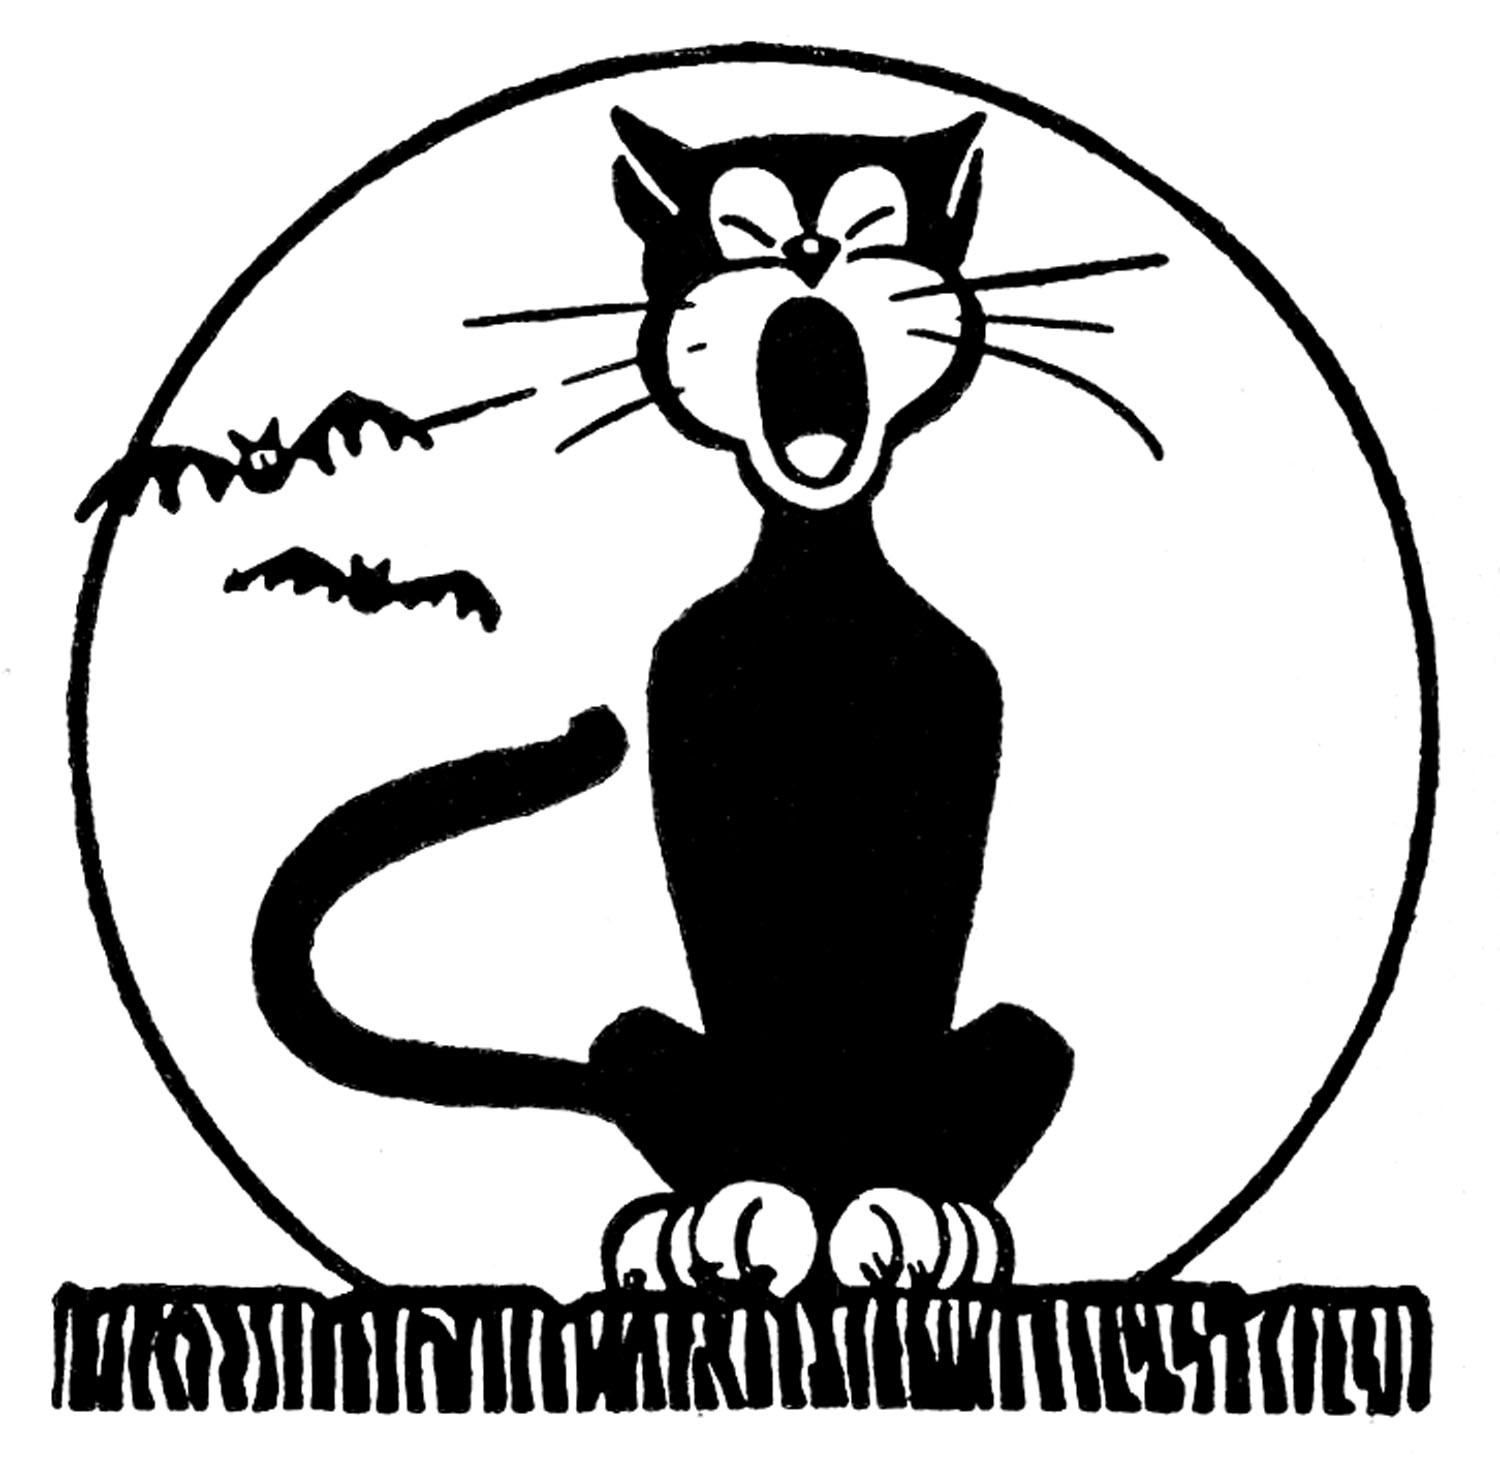 Retro Halloween Clip Art - Black Cat with Moon - The ...